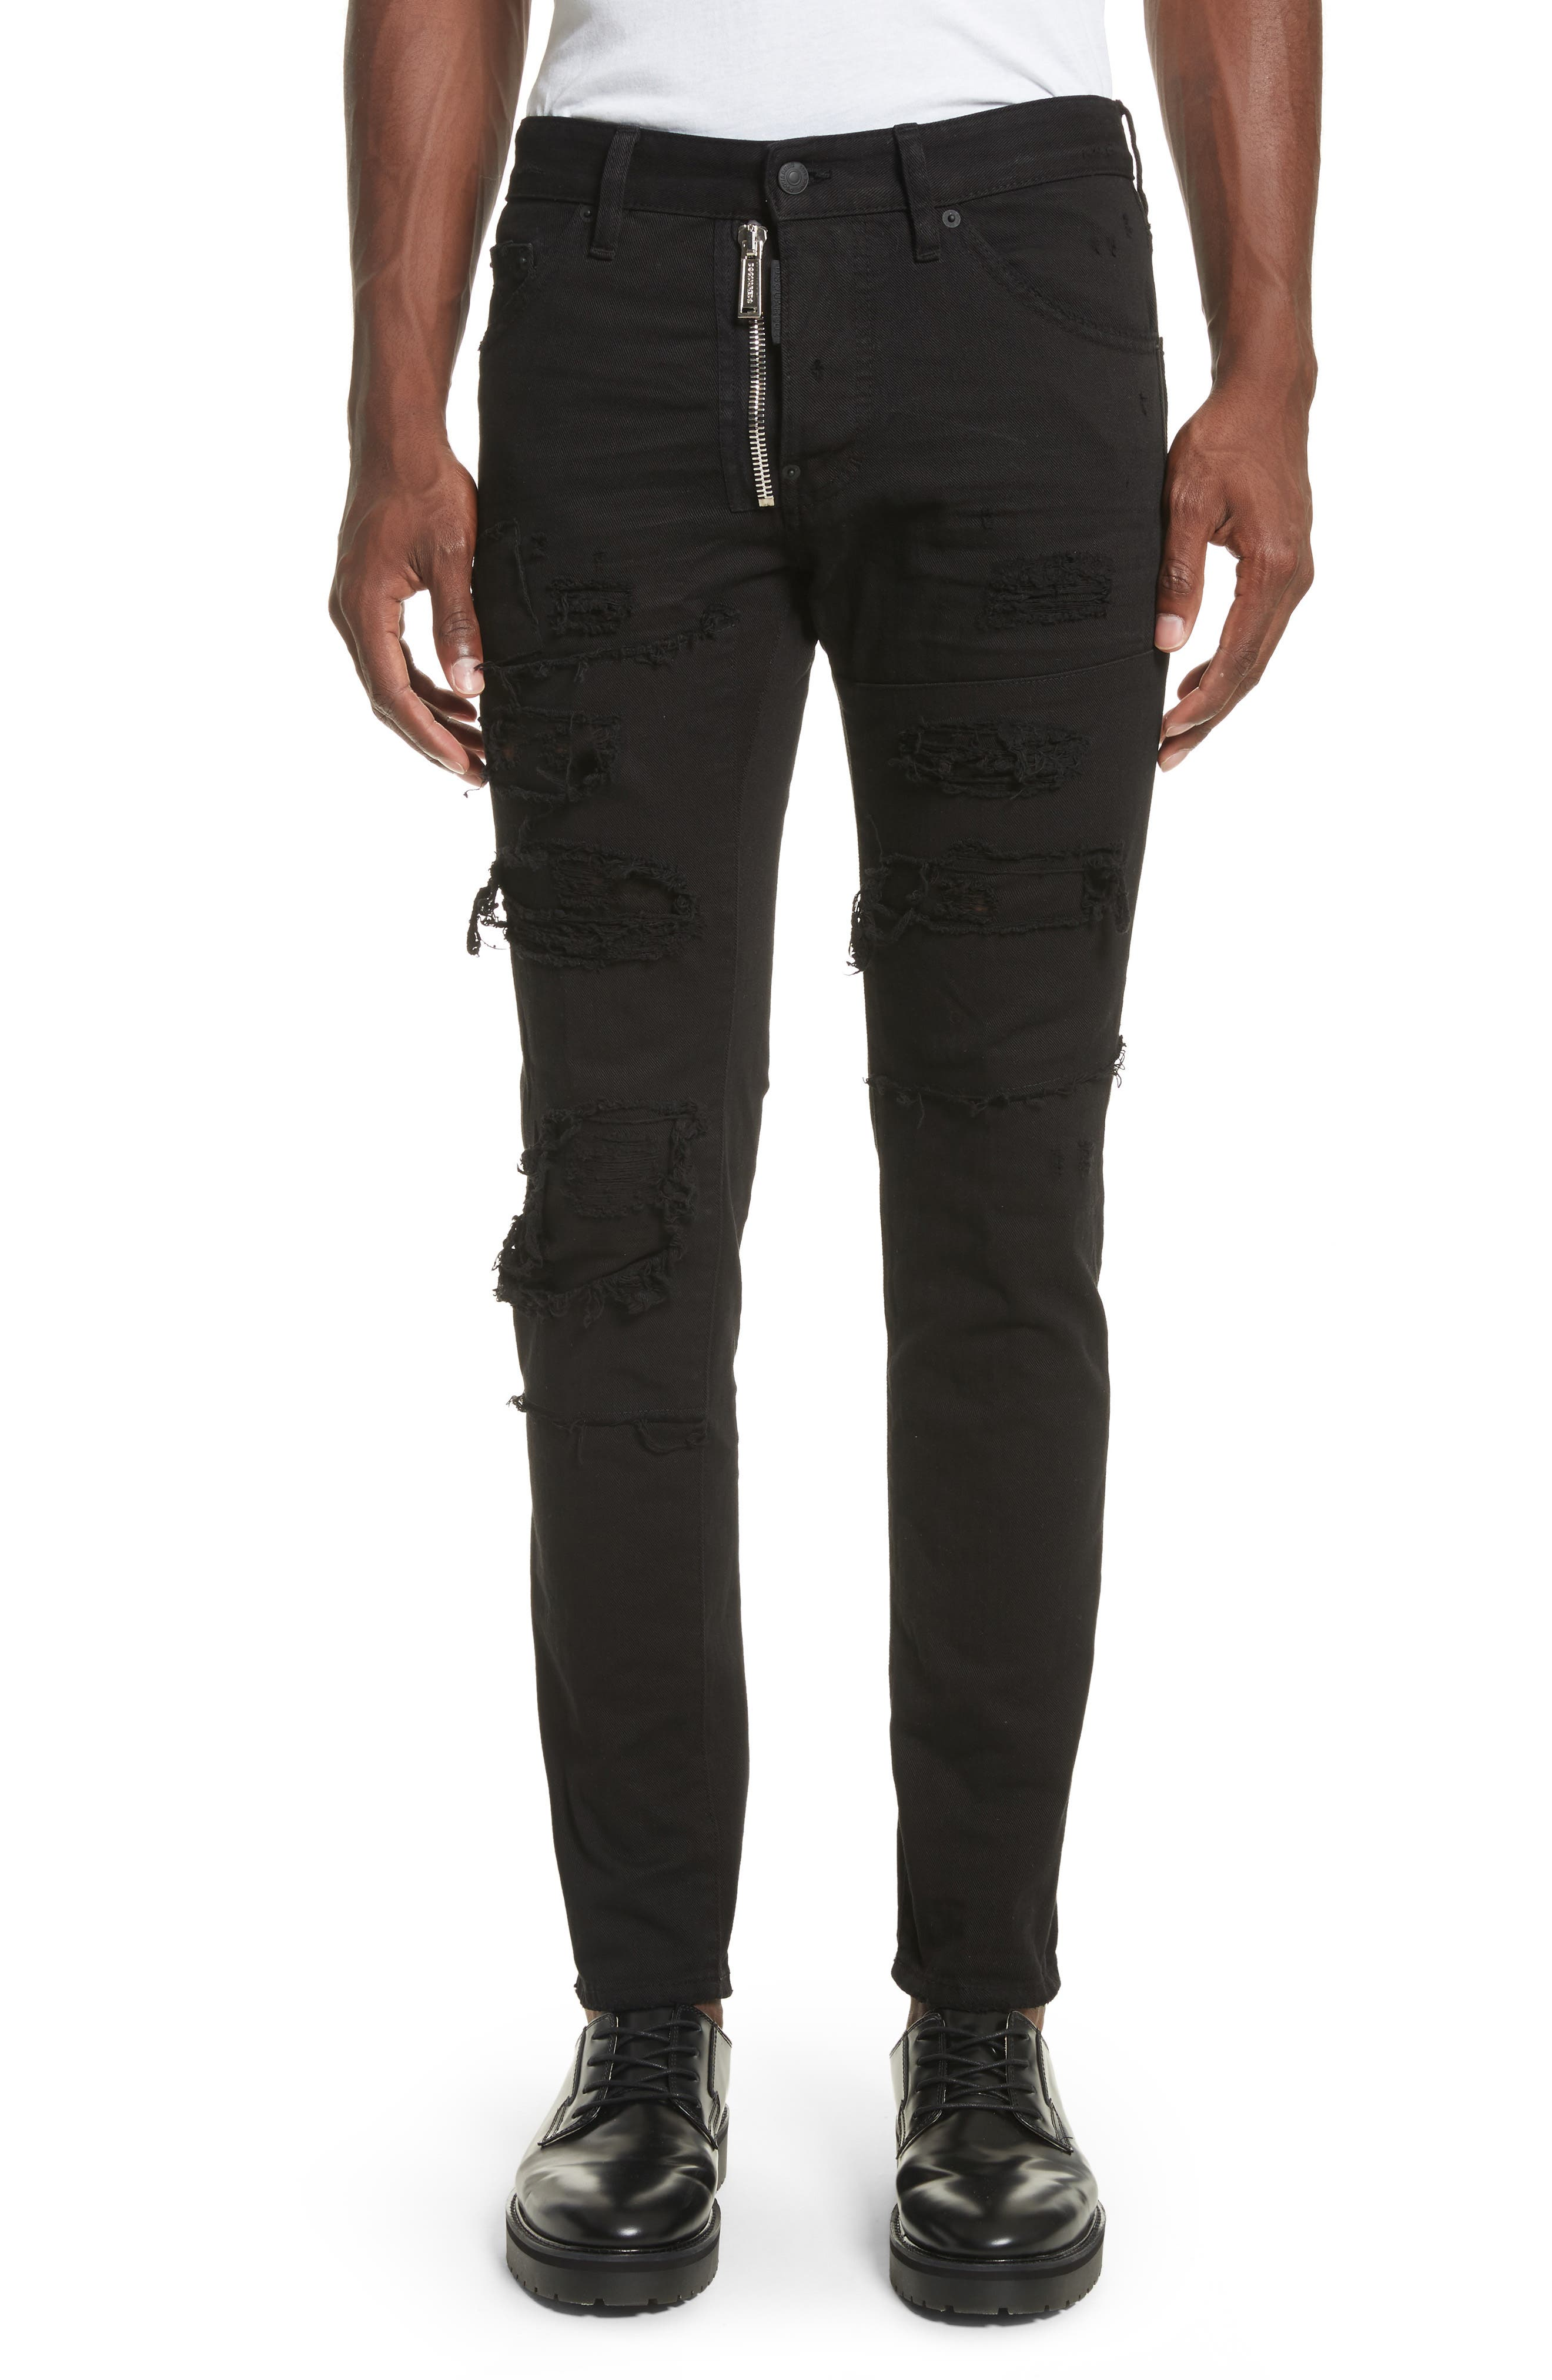 Ripped Washed Cool Guy Jeans,                             Main thumbnail 1, color,                             001